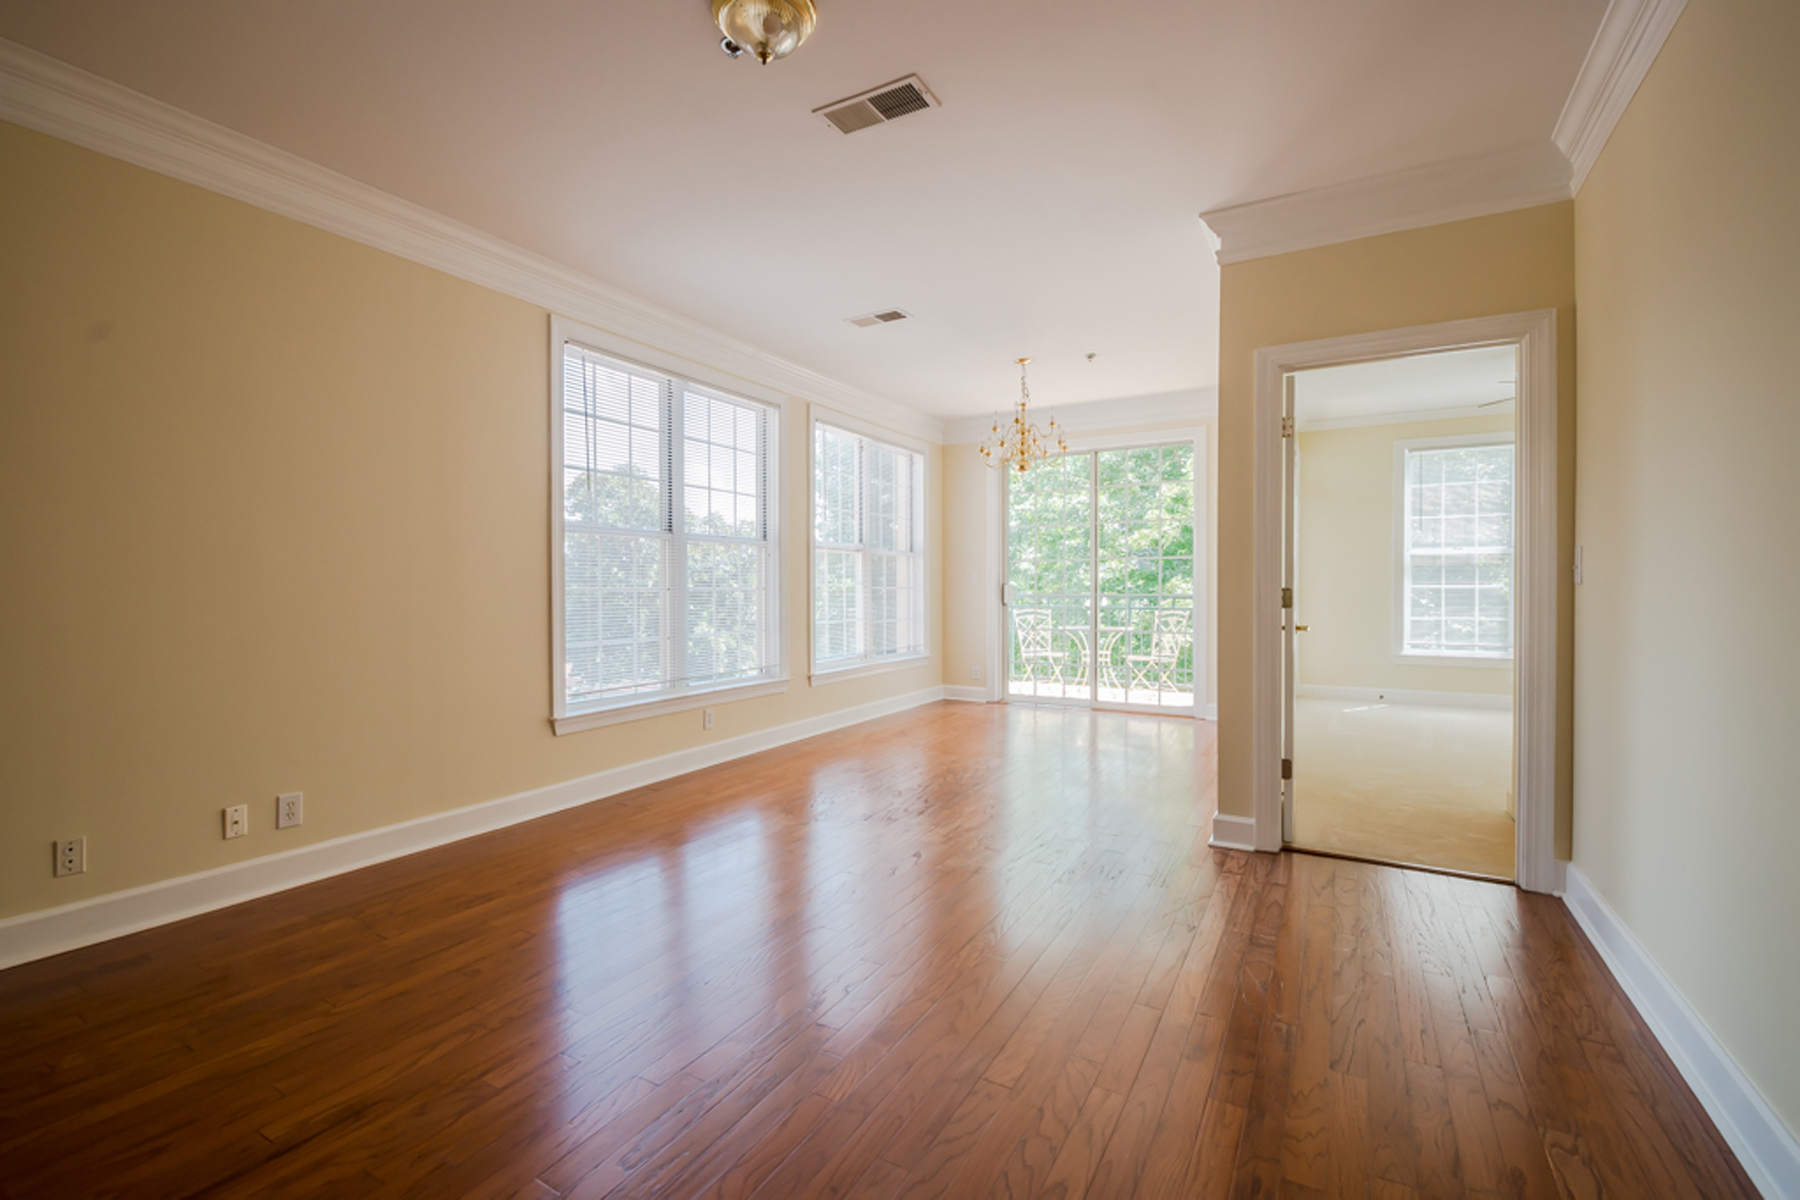 Additional photo for property listing at All New And Move-in Ready One Bedroom With Den 3101 Howell Mill Road Unit 211 Atlanta, Georgia 30327 United States